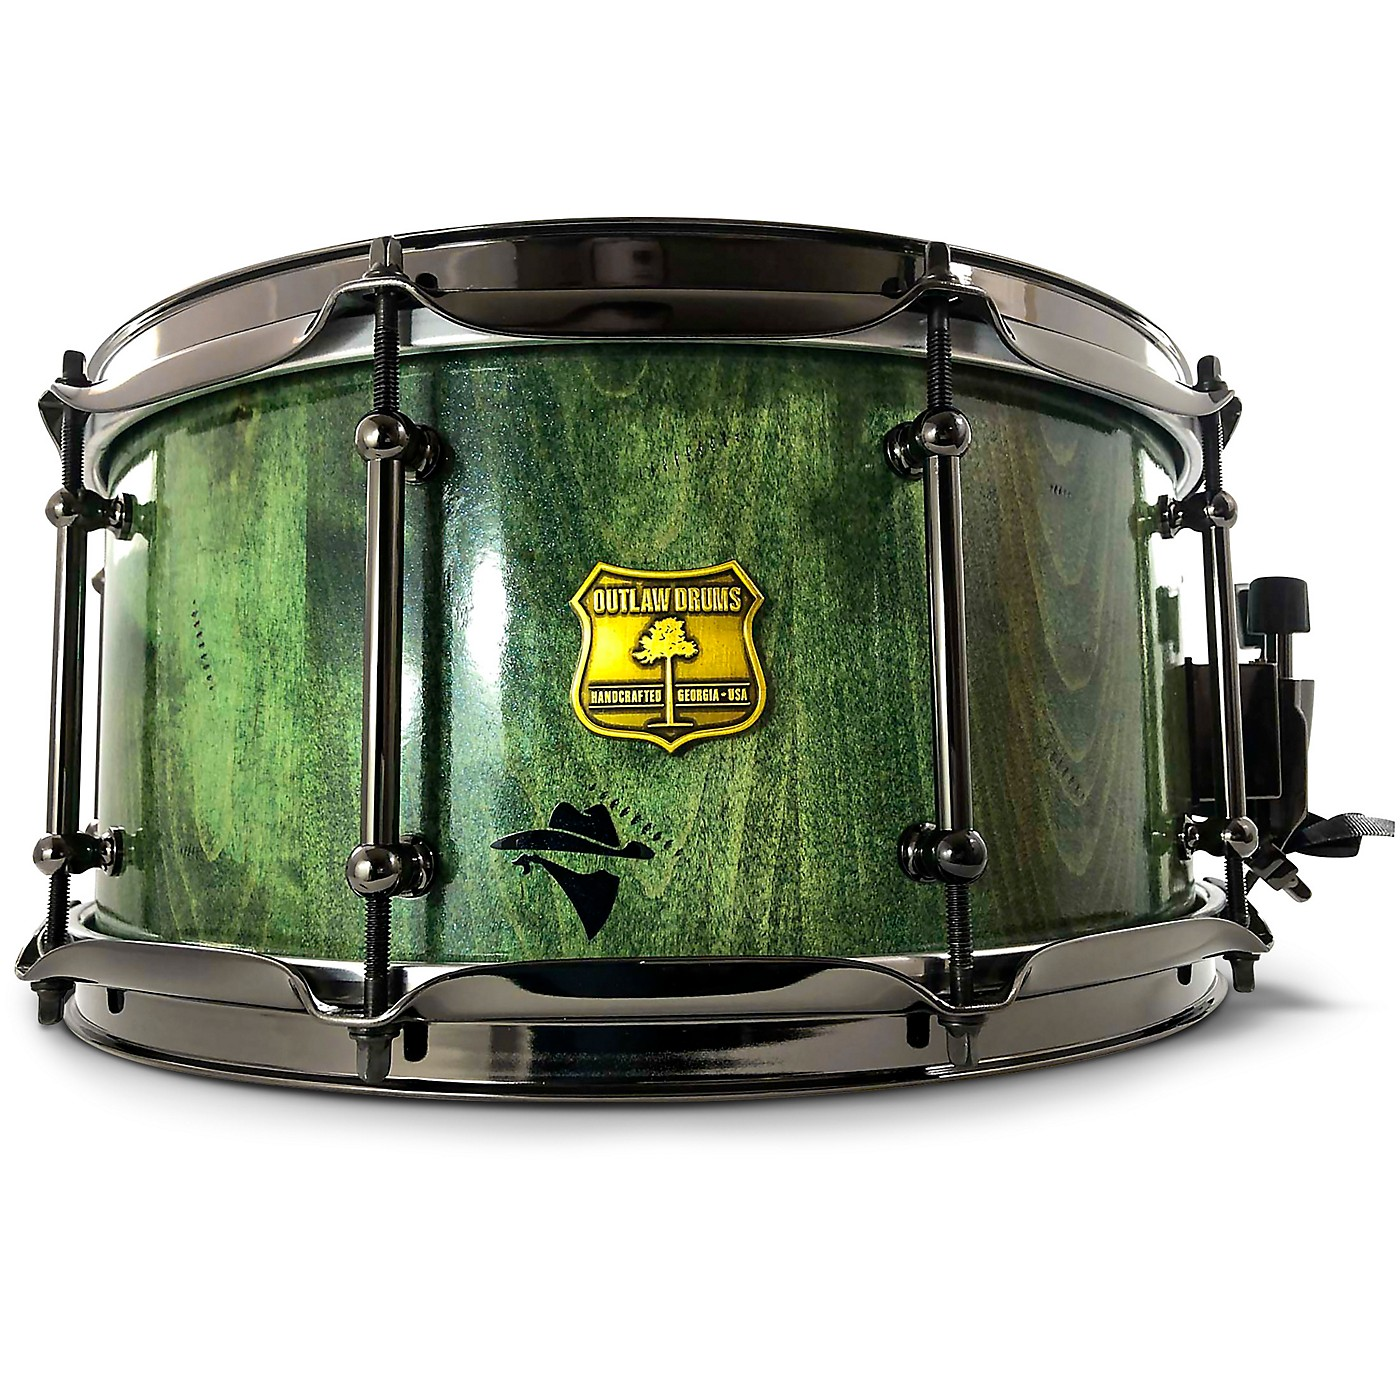 OUTLAW DRUMS Bandit Series Snare Drum with Black Hardware thumbnail